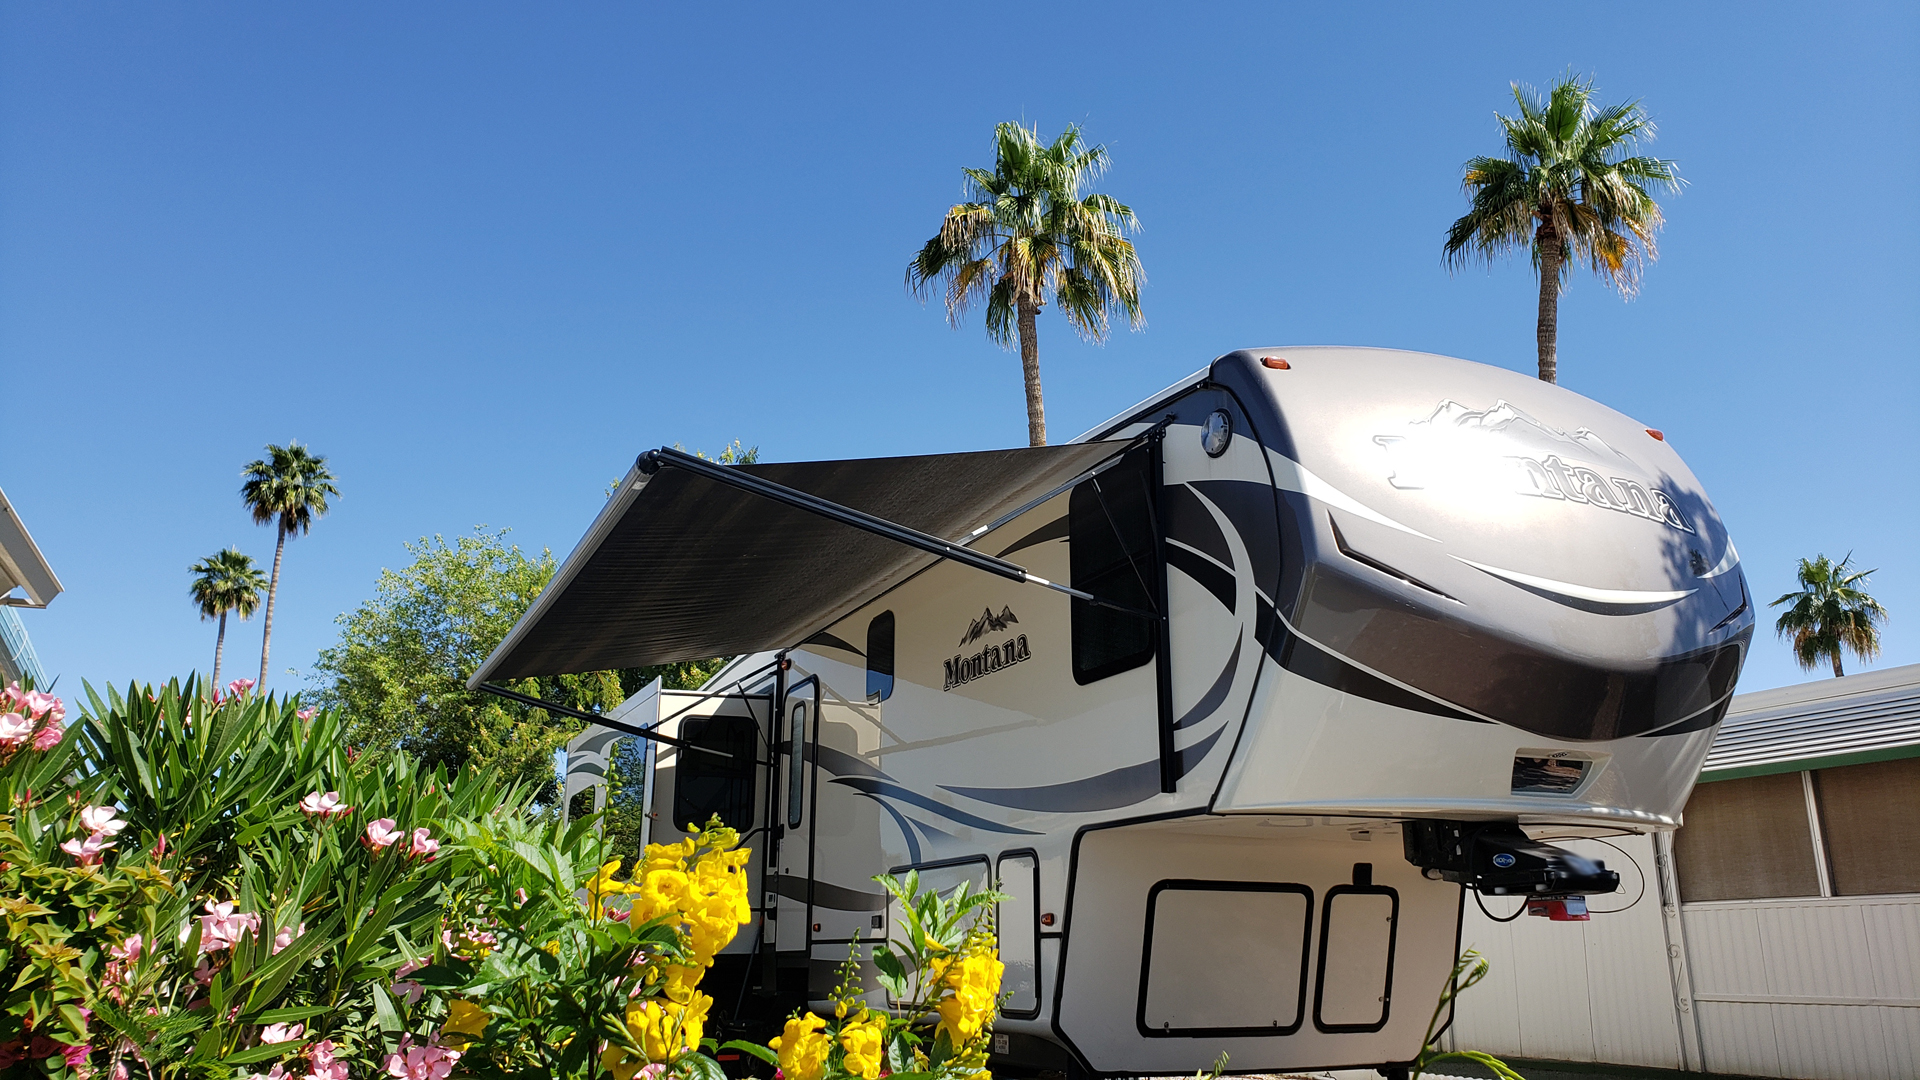 RV Tips for Hot Weather